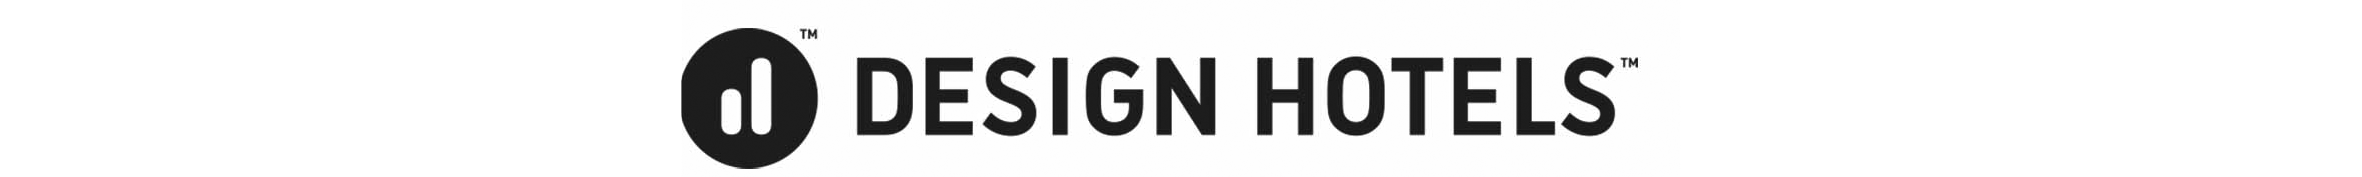 DH_Logo_oneline-1.png